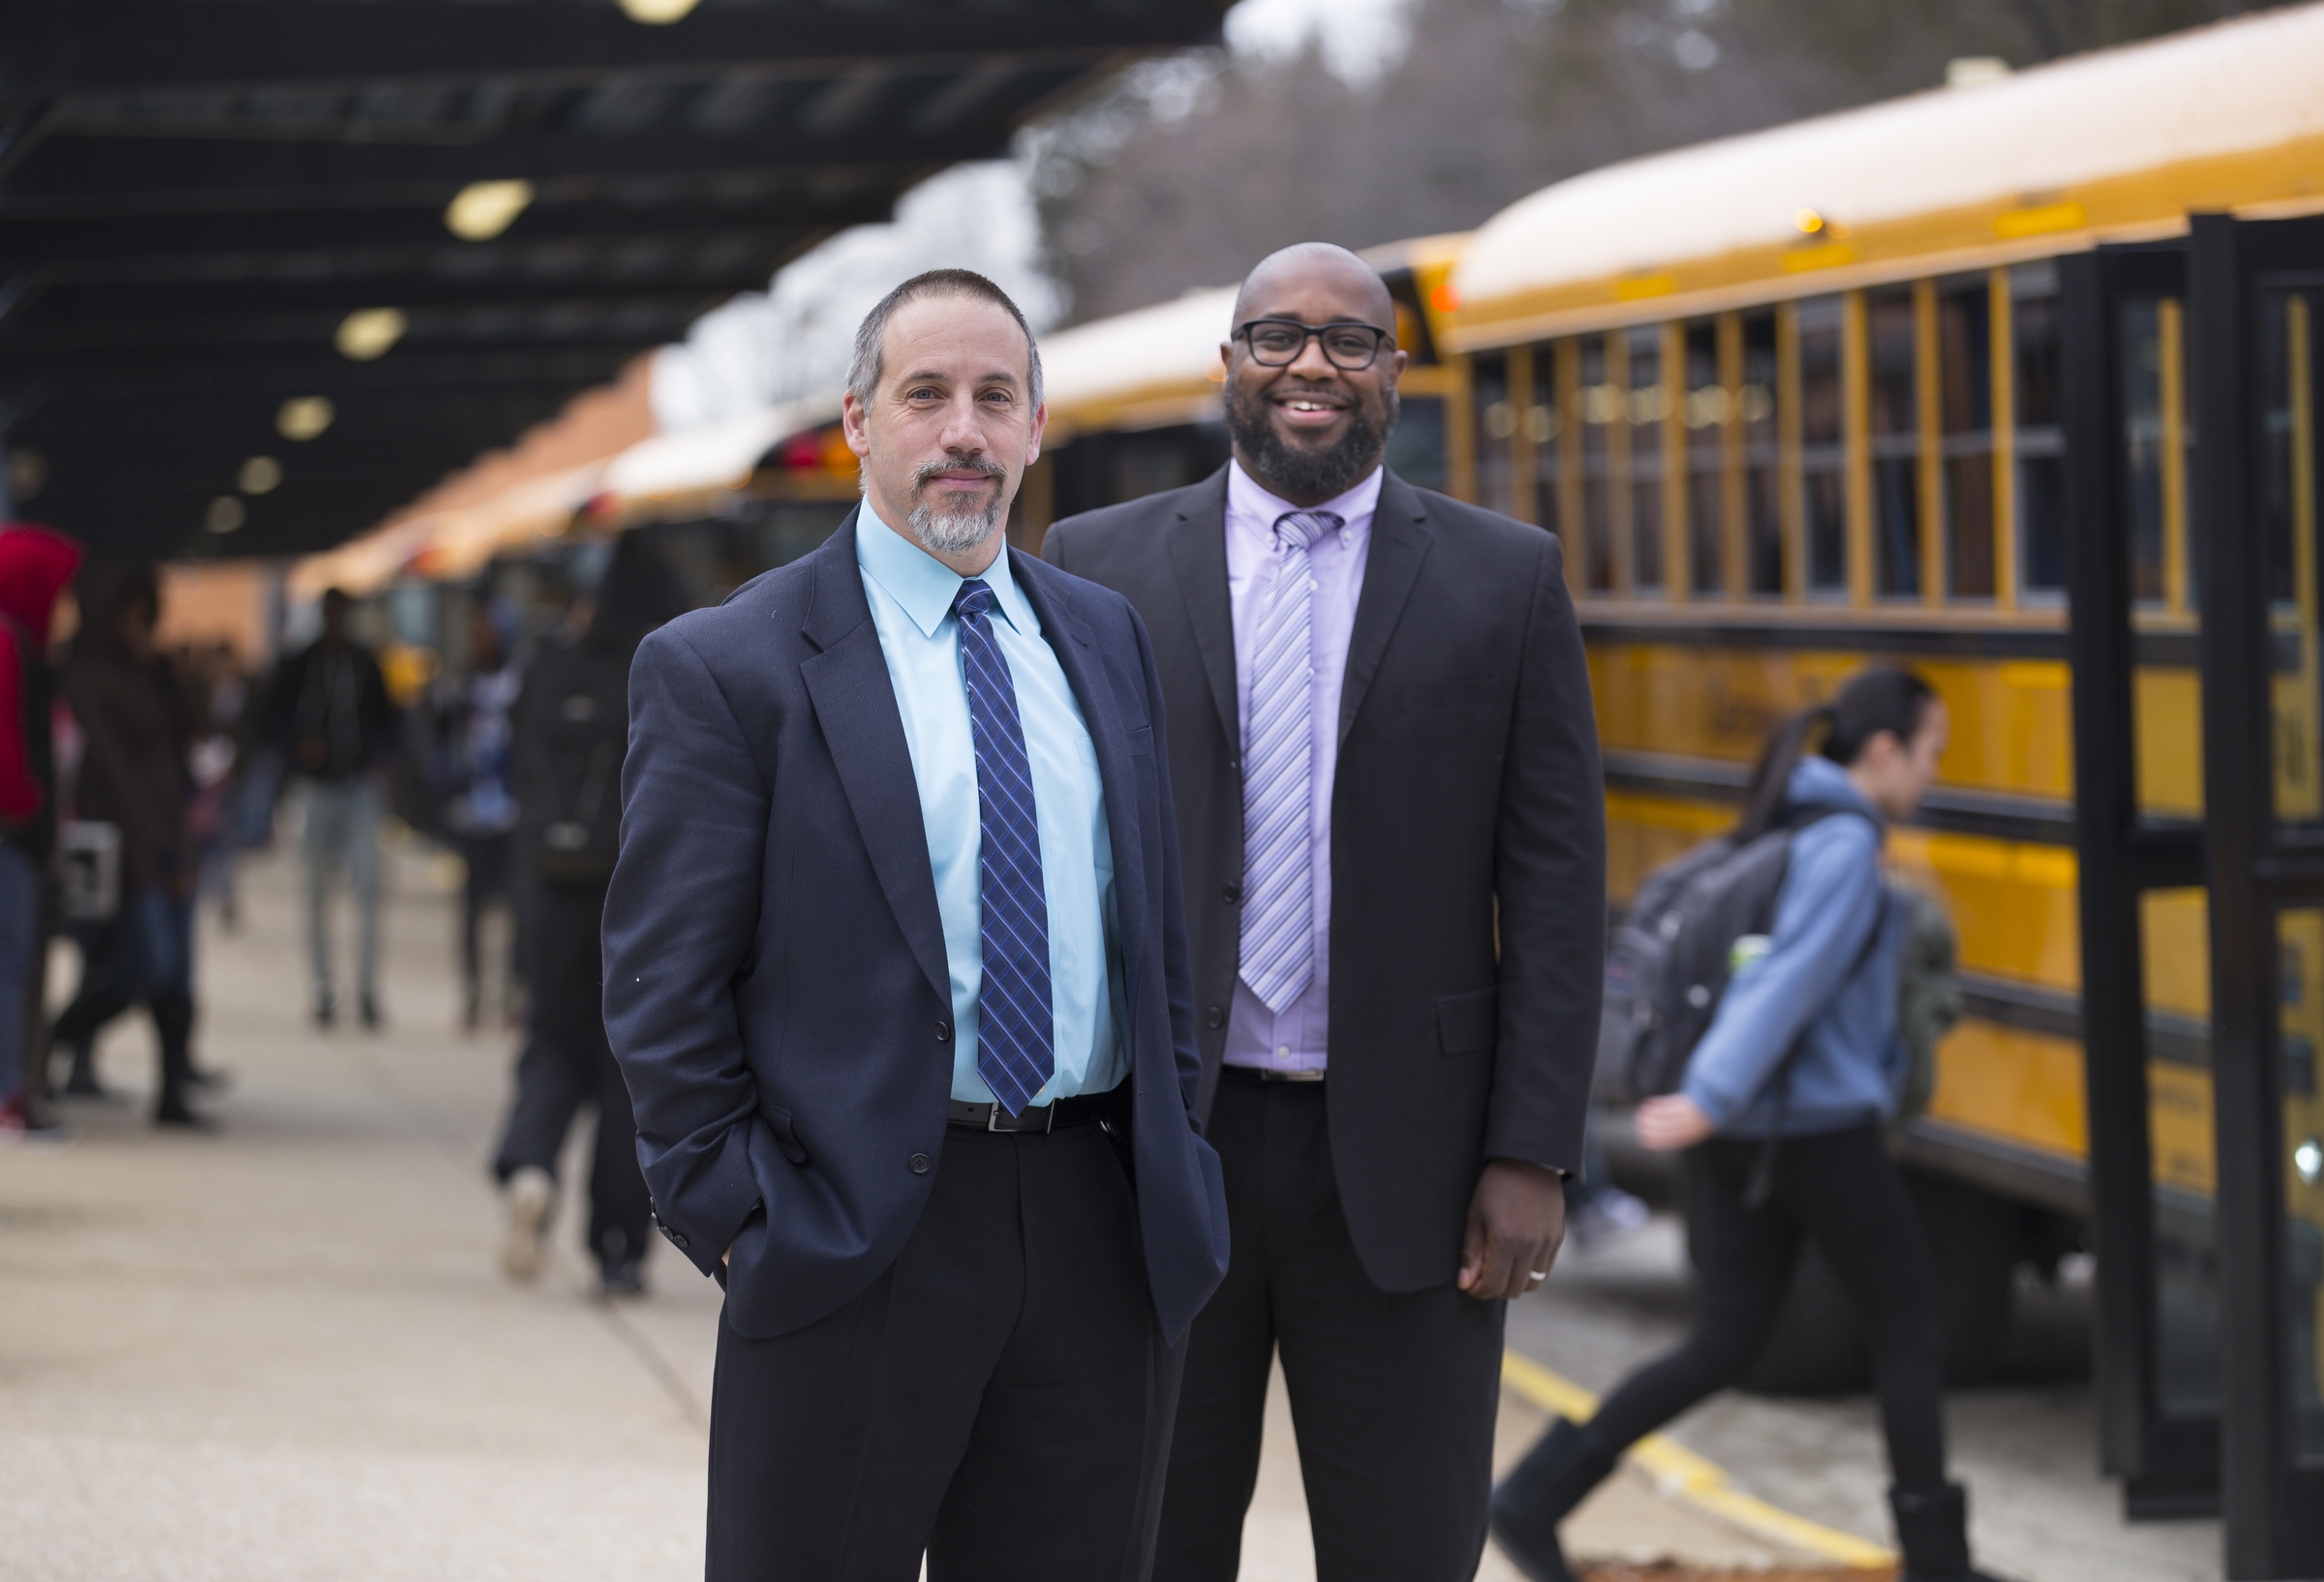 Dr. Raymond McFall, Principal, left, and Robert Curry, Climate and Culture Administrator, right, are shown here at Cheltenham High School, in Wyncote, PA, Tuesday, February 6, 2018. After last spring´s student melee in which seven staff members were hurt, Cheltenham School District has made dramatic moves to change the culture and climate at the school. JESSICA GRIFFIN / Staff Photographer.